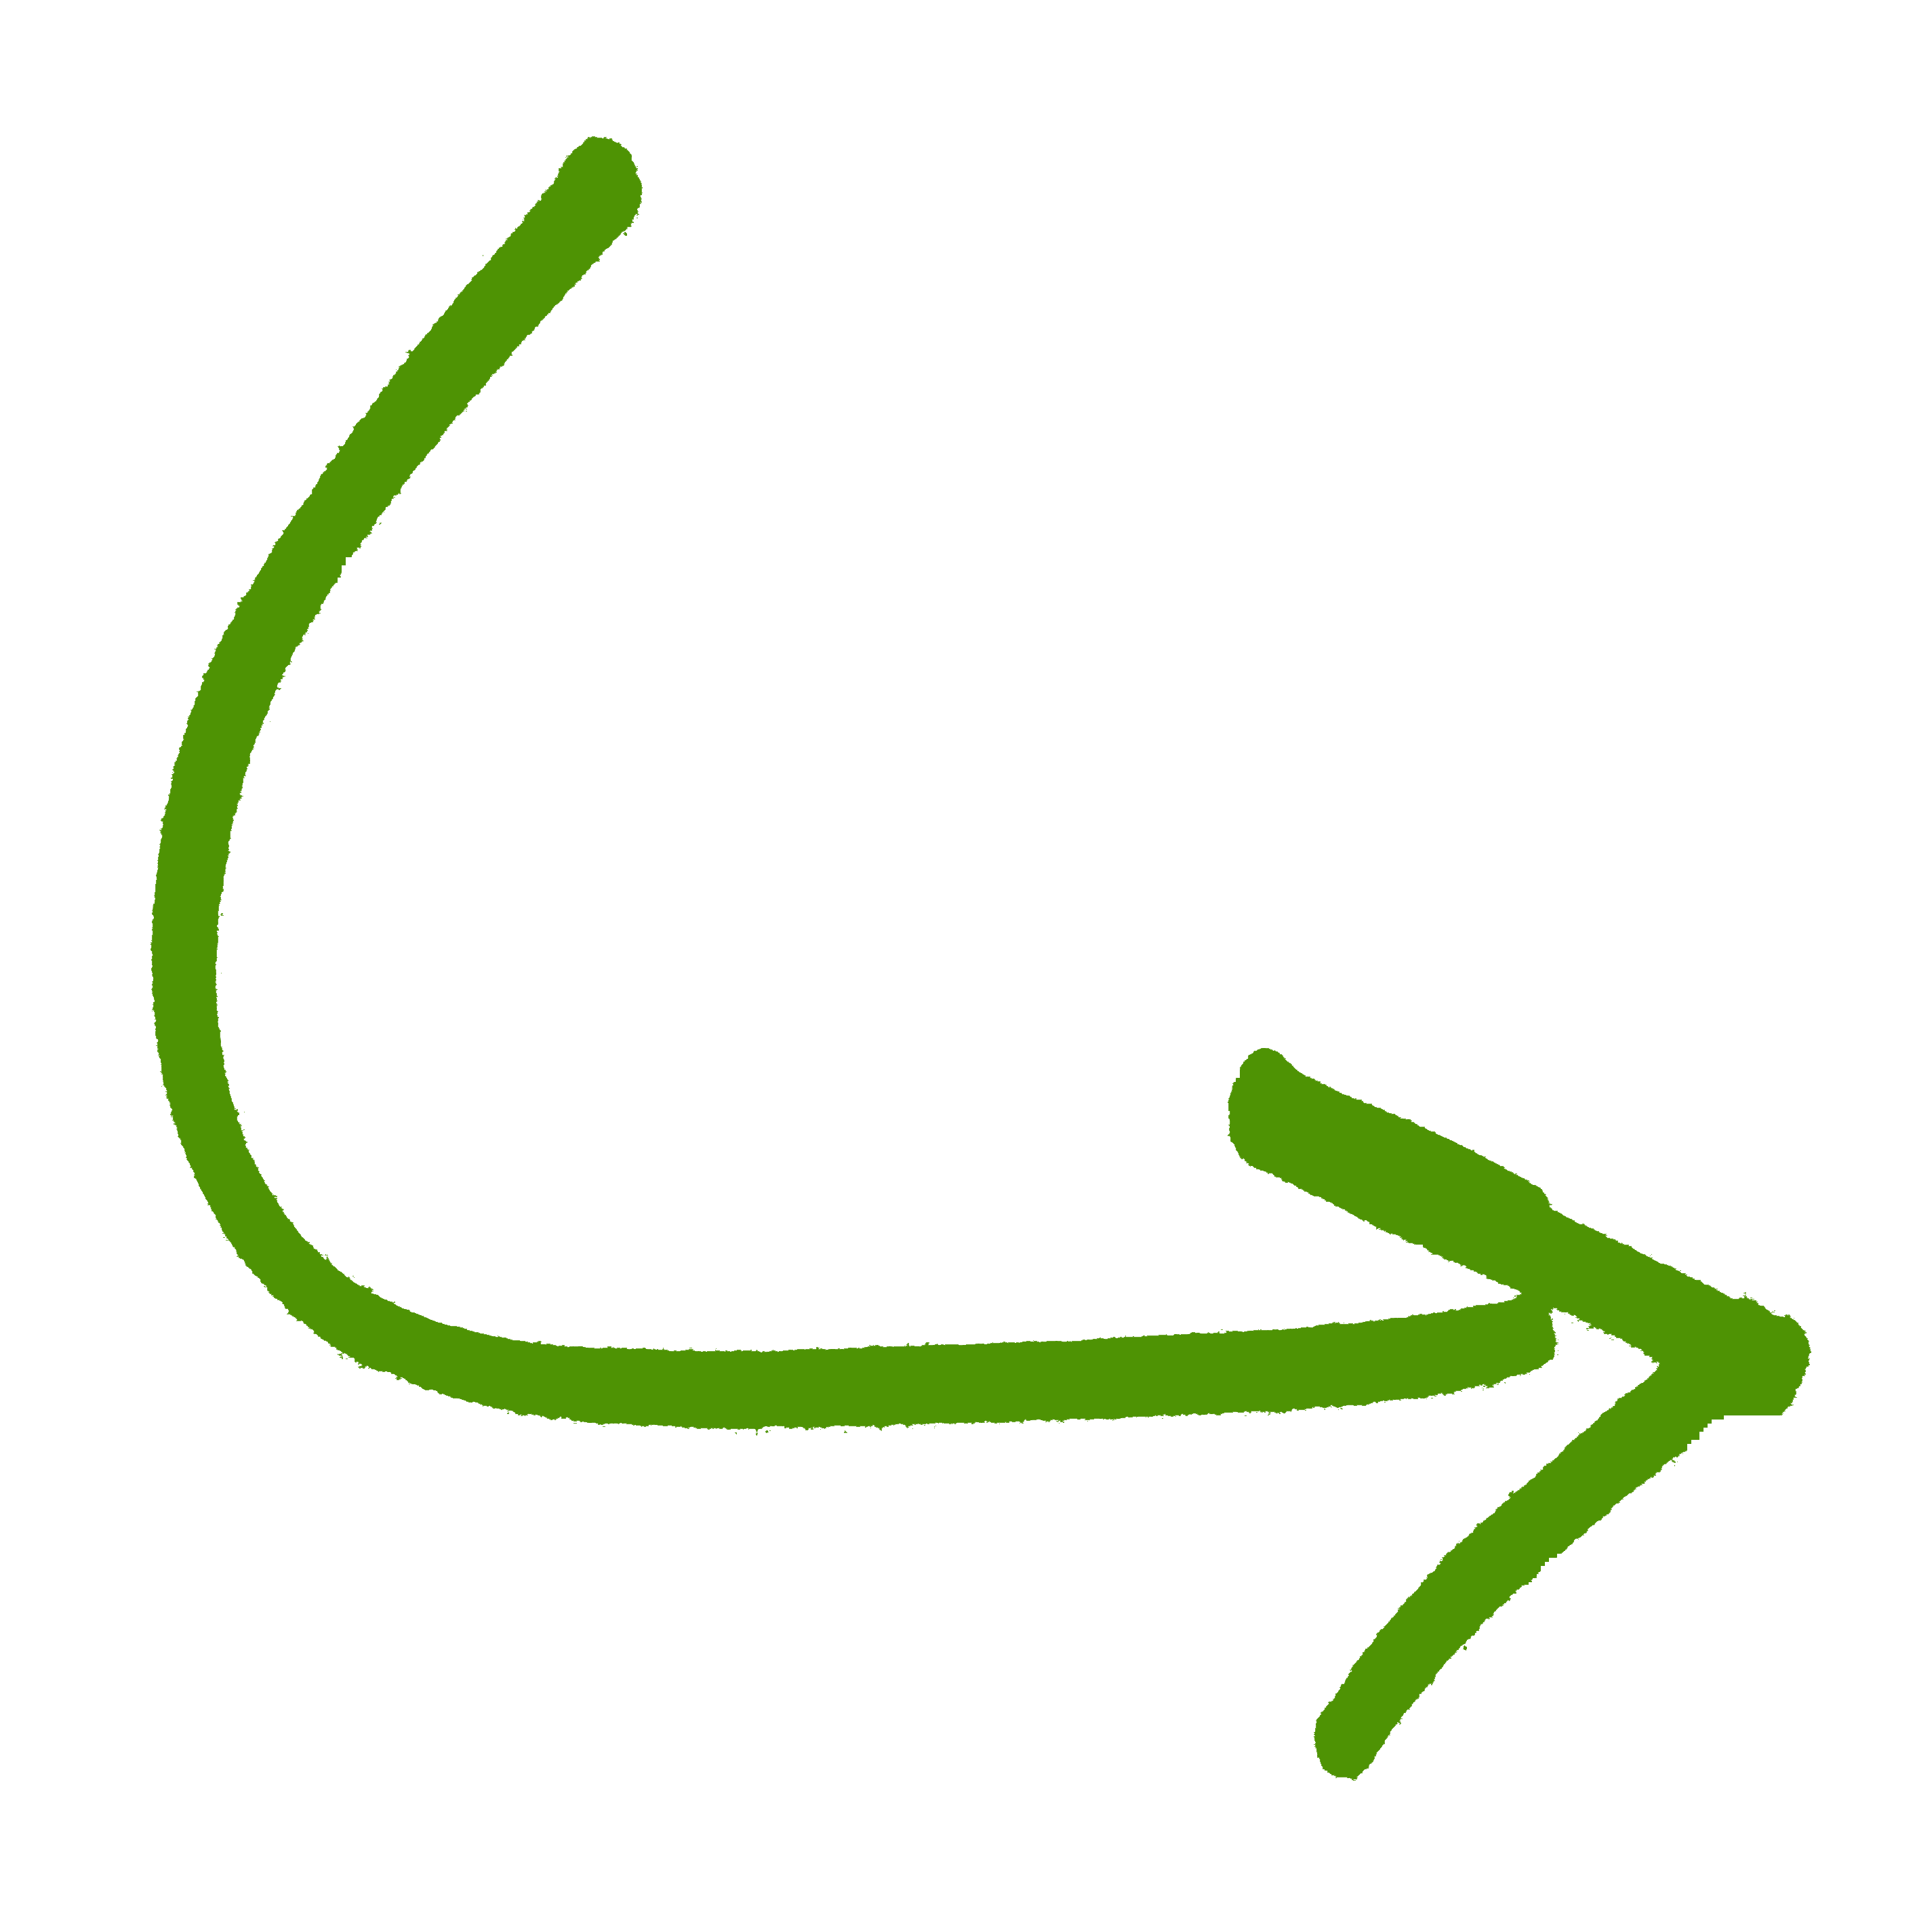 Green curved arrow png. Down free icons and